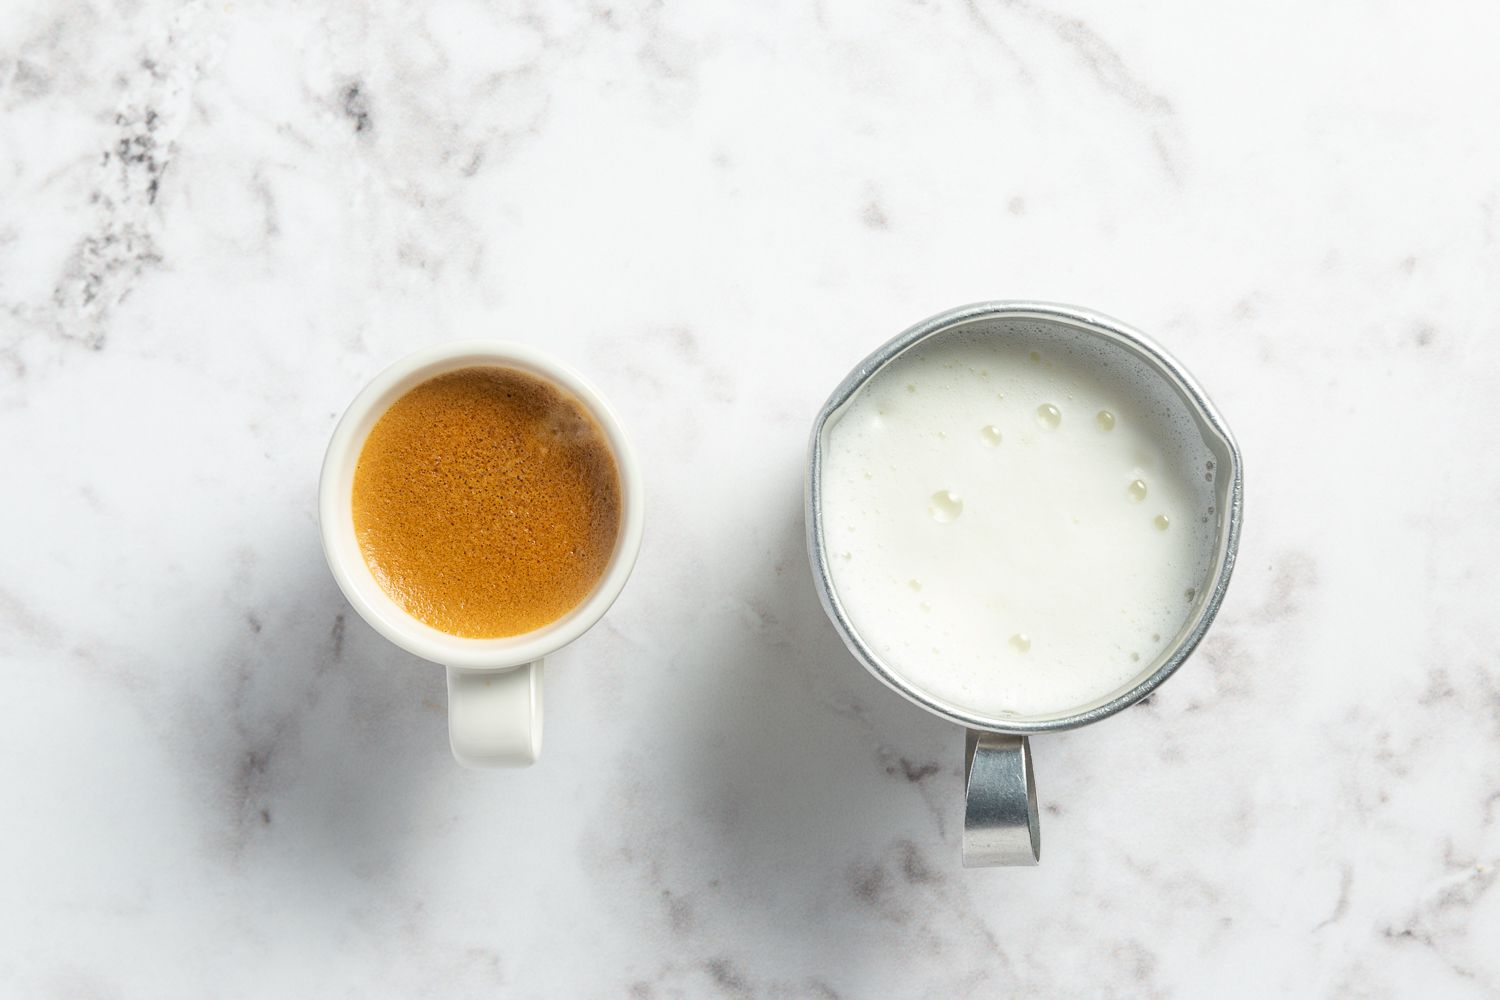 flat white espresso ingredients - expresso shot and frothed milk